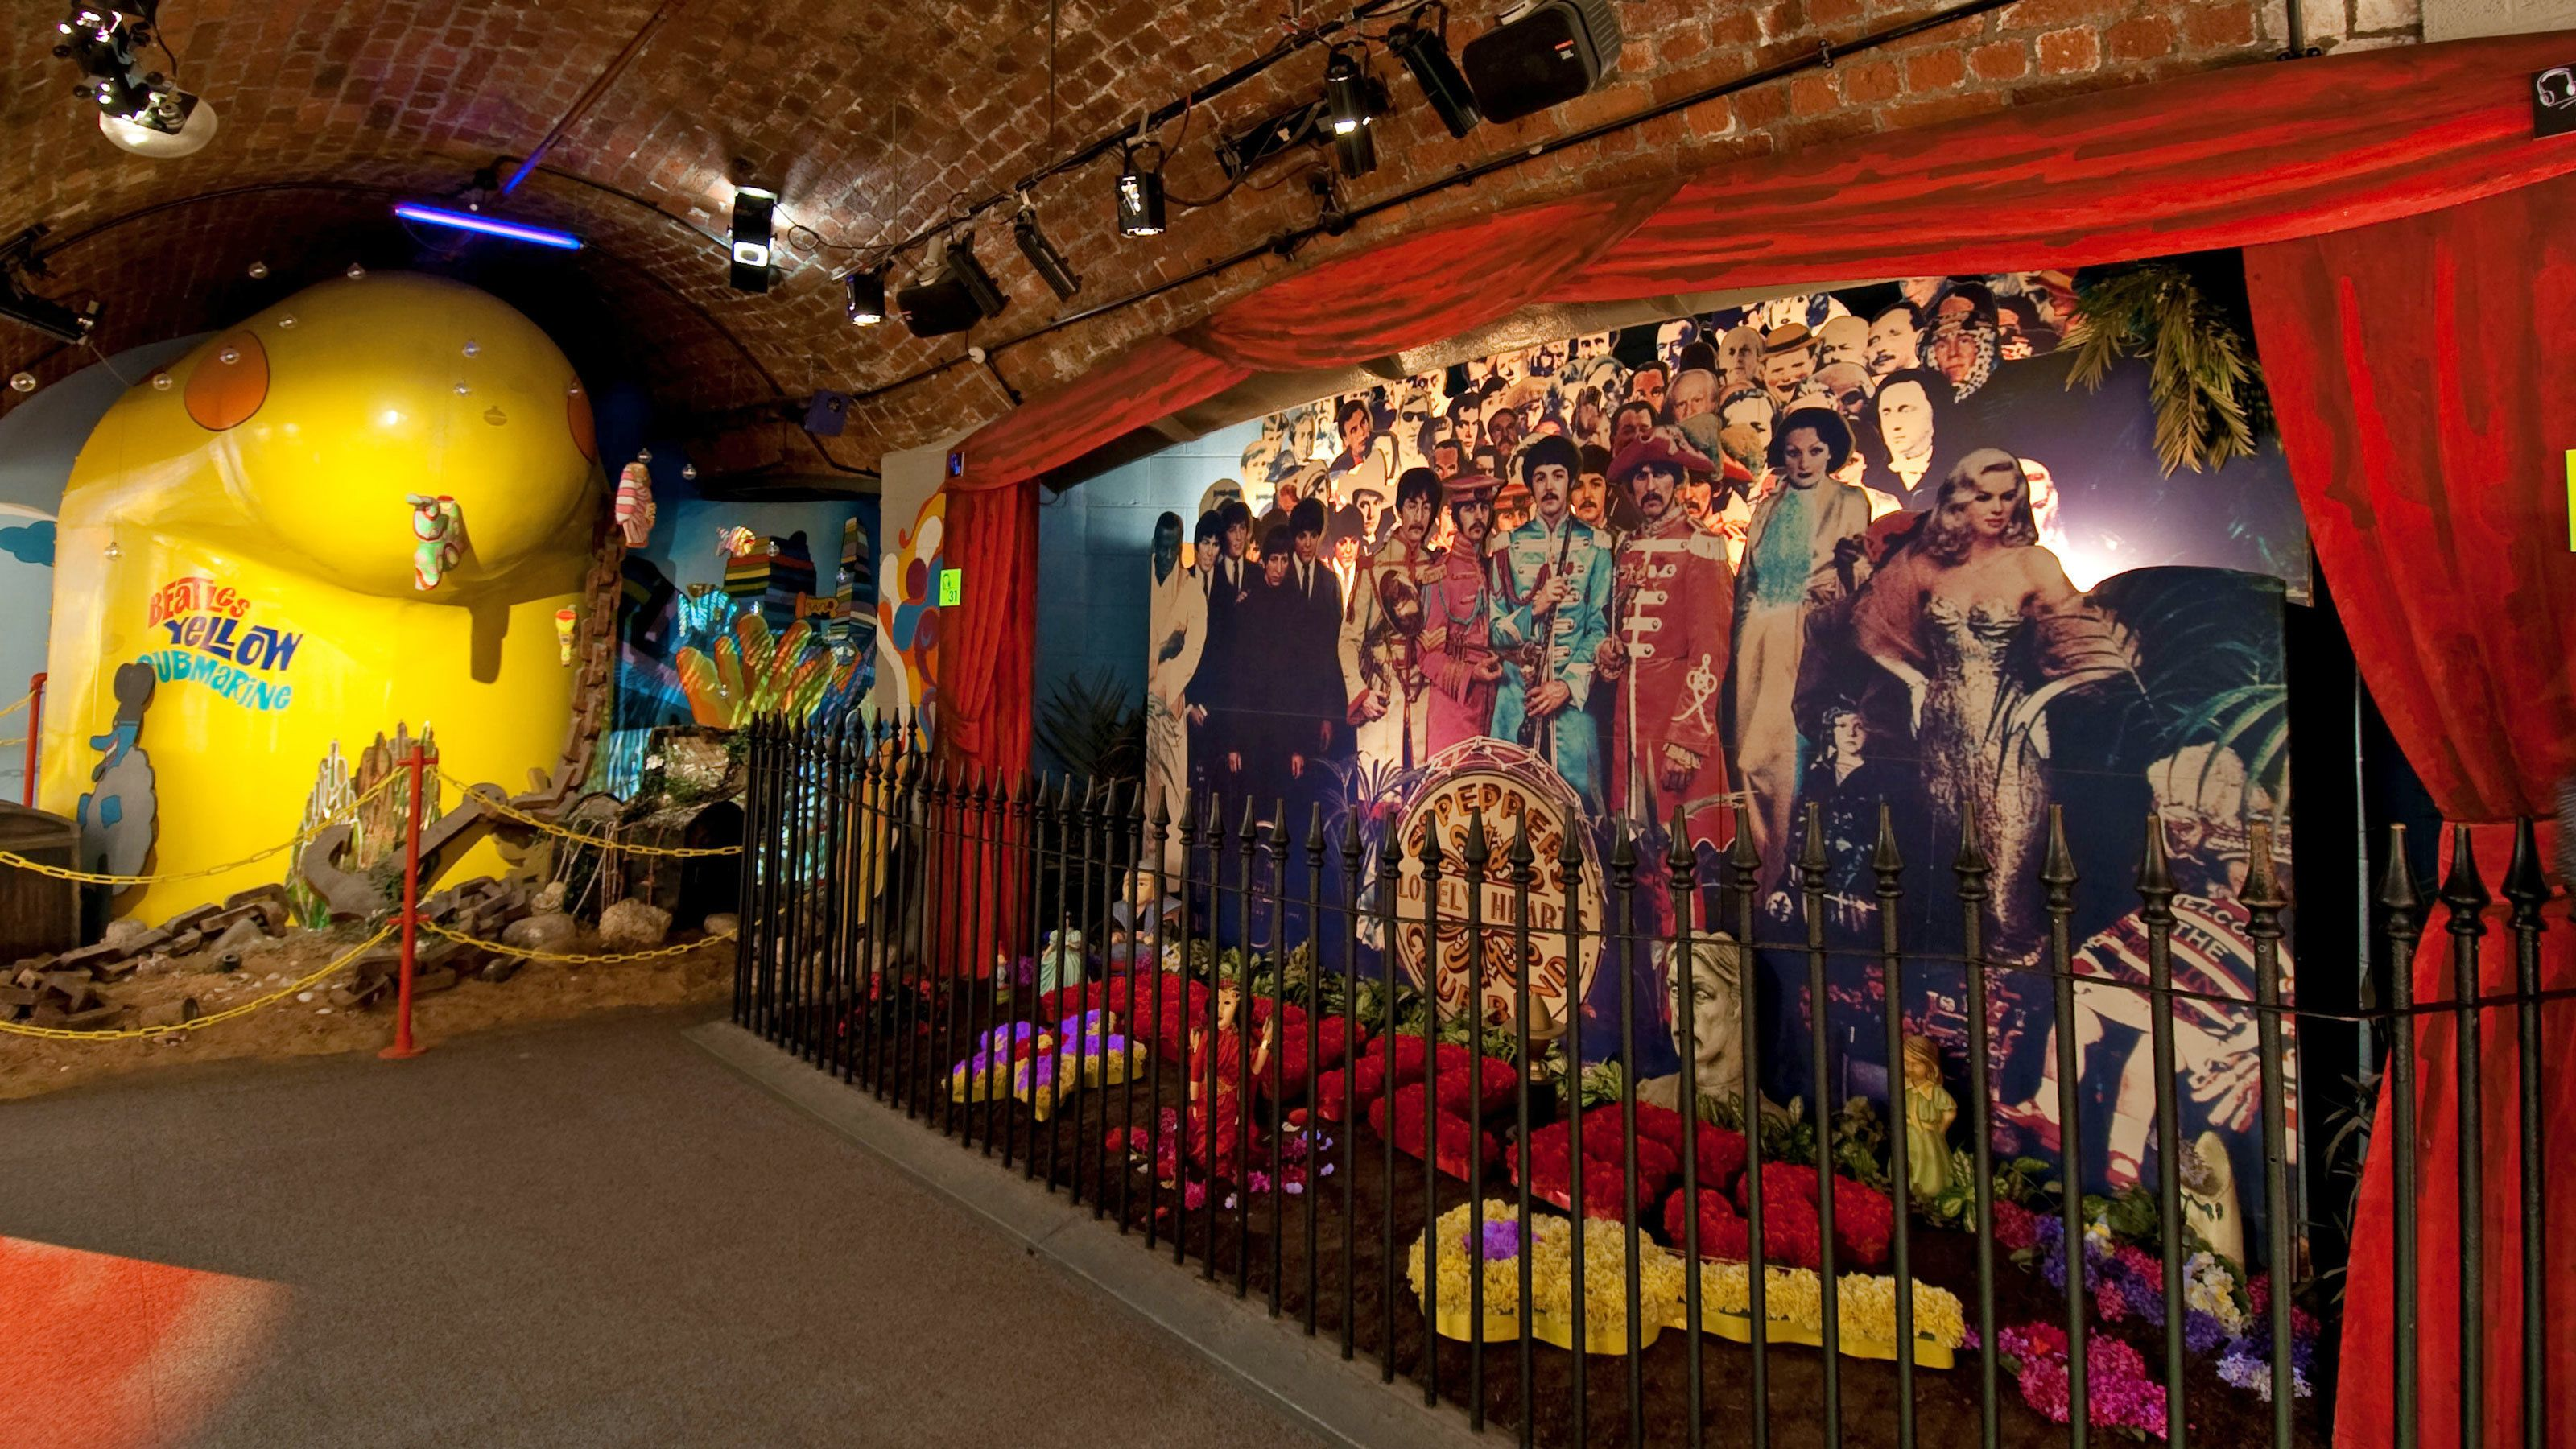 View of Liverpool Beatles tour in London